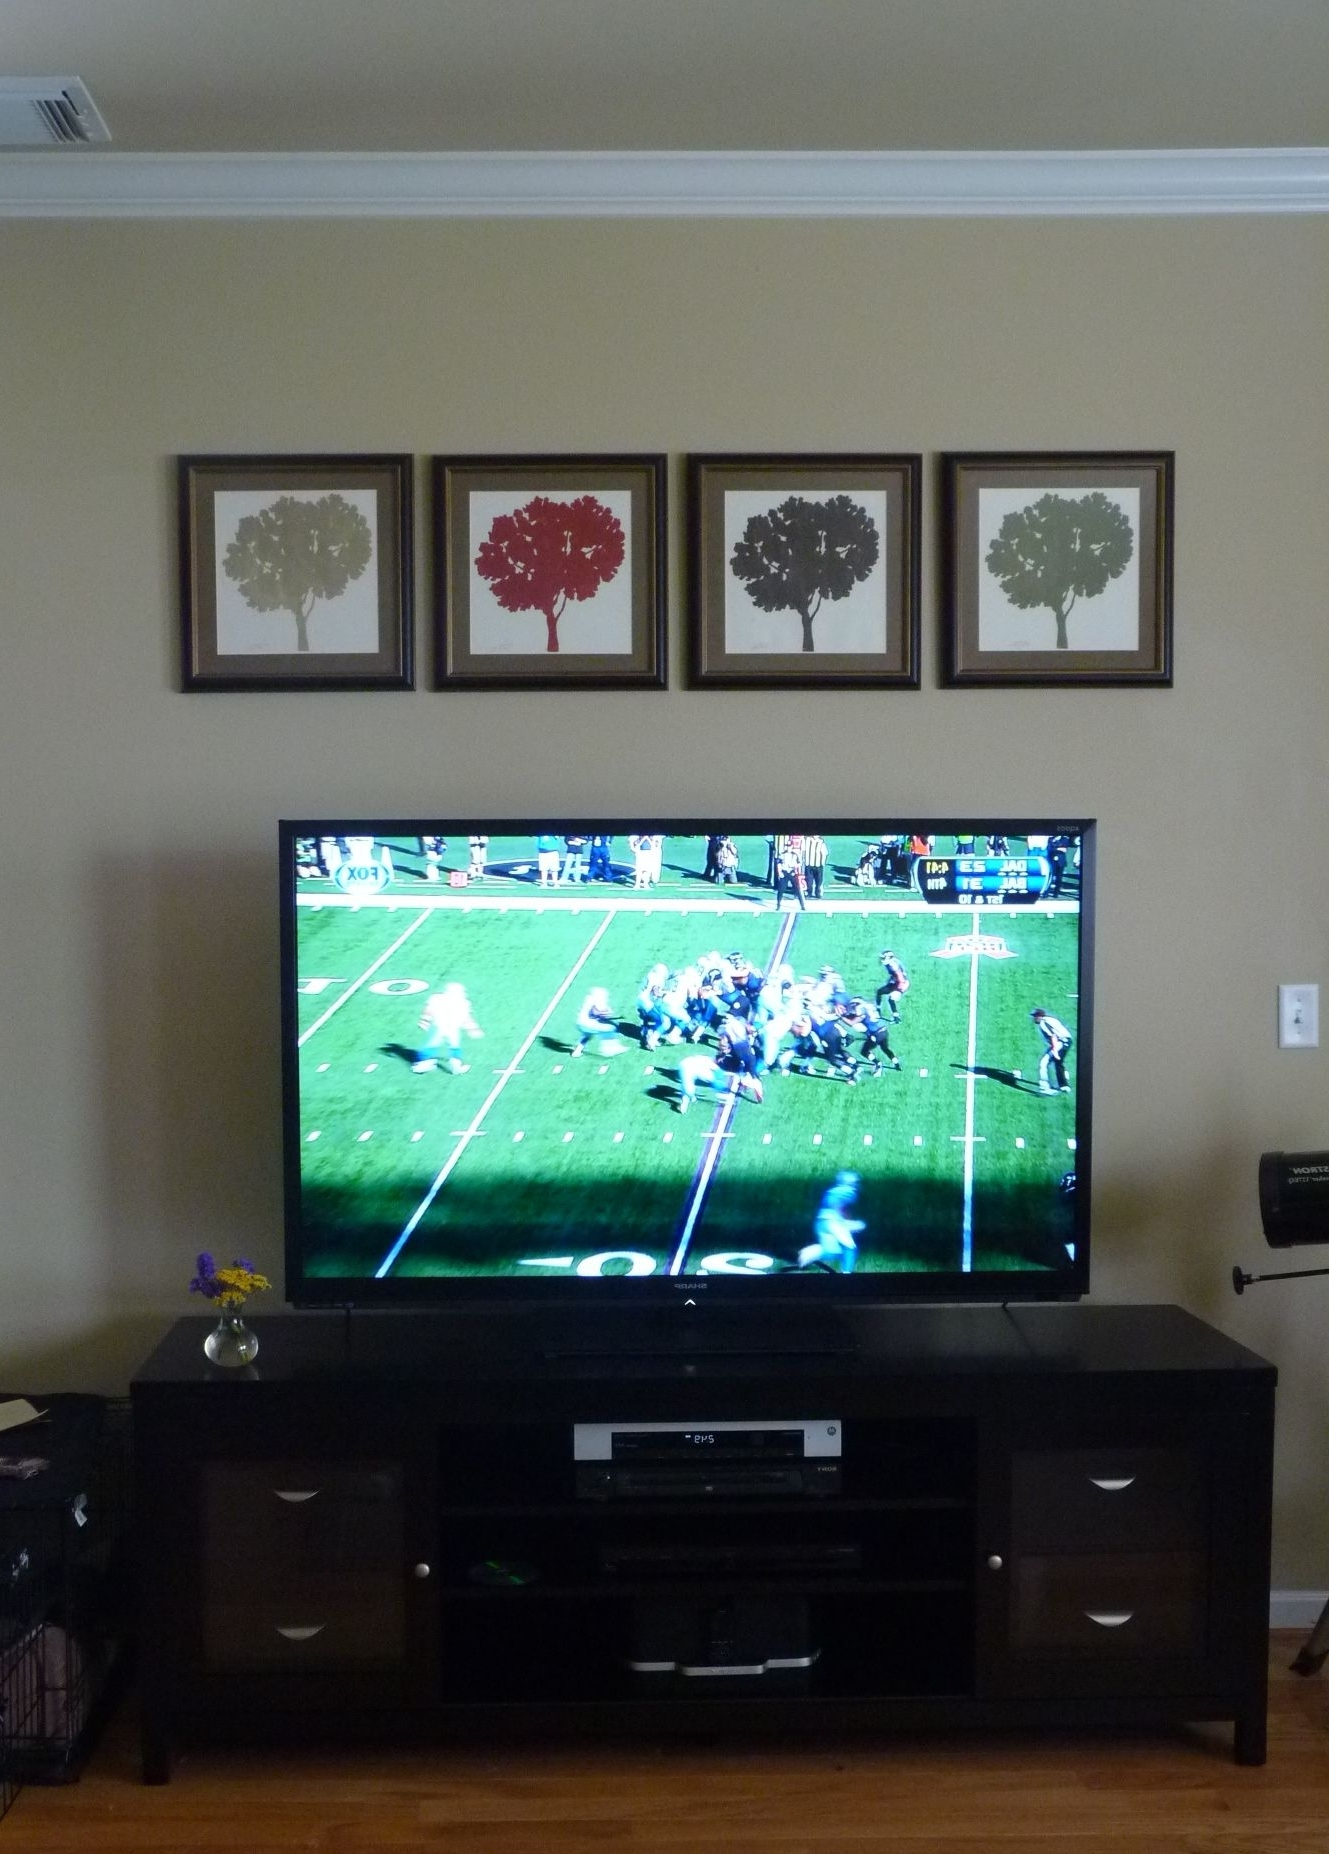 Decorating Around A Flat Screen Tv. Tree Prints Were Made In 40+ Decorating Living Room With Flat Screen Tv Inspirations